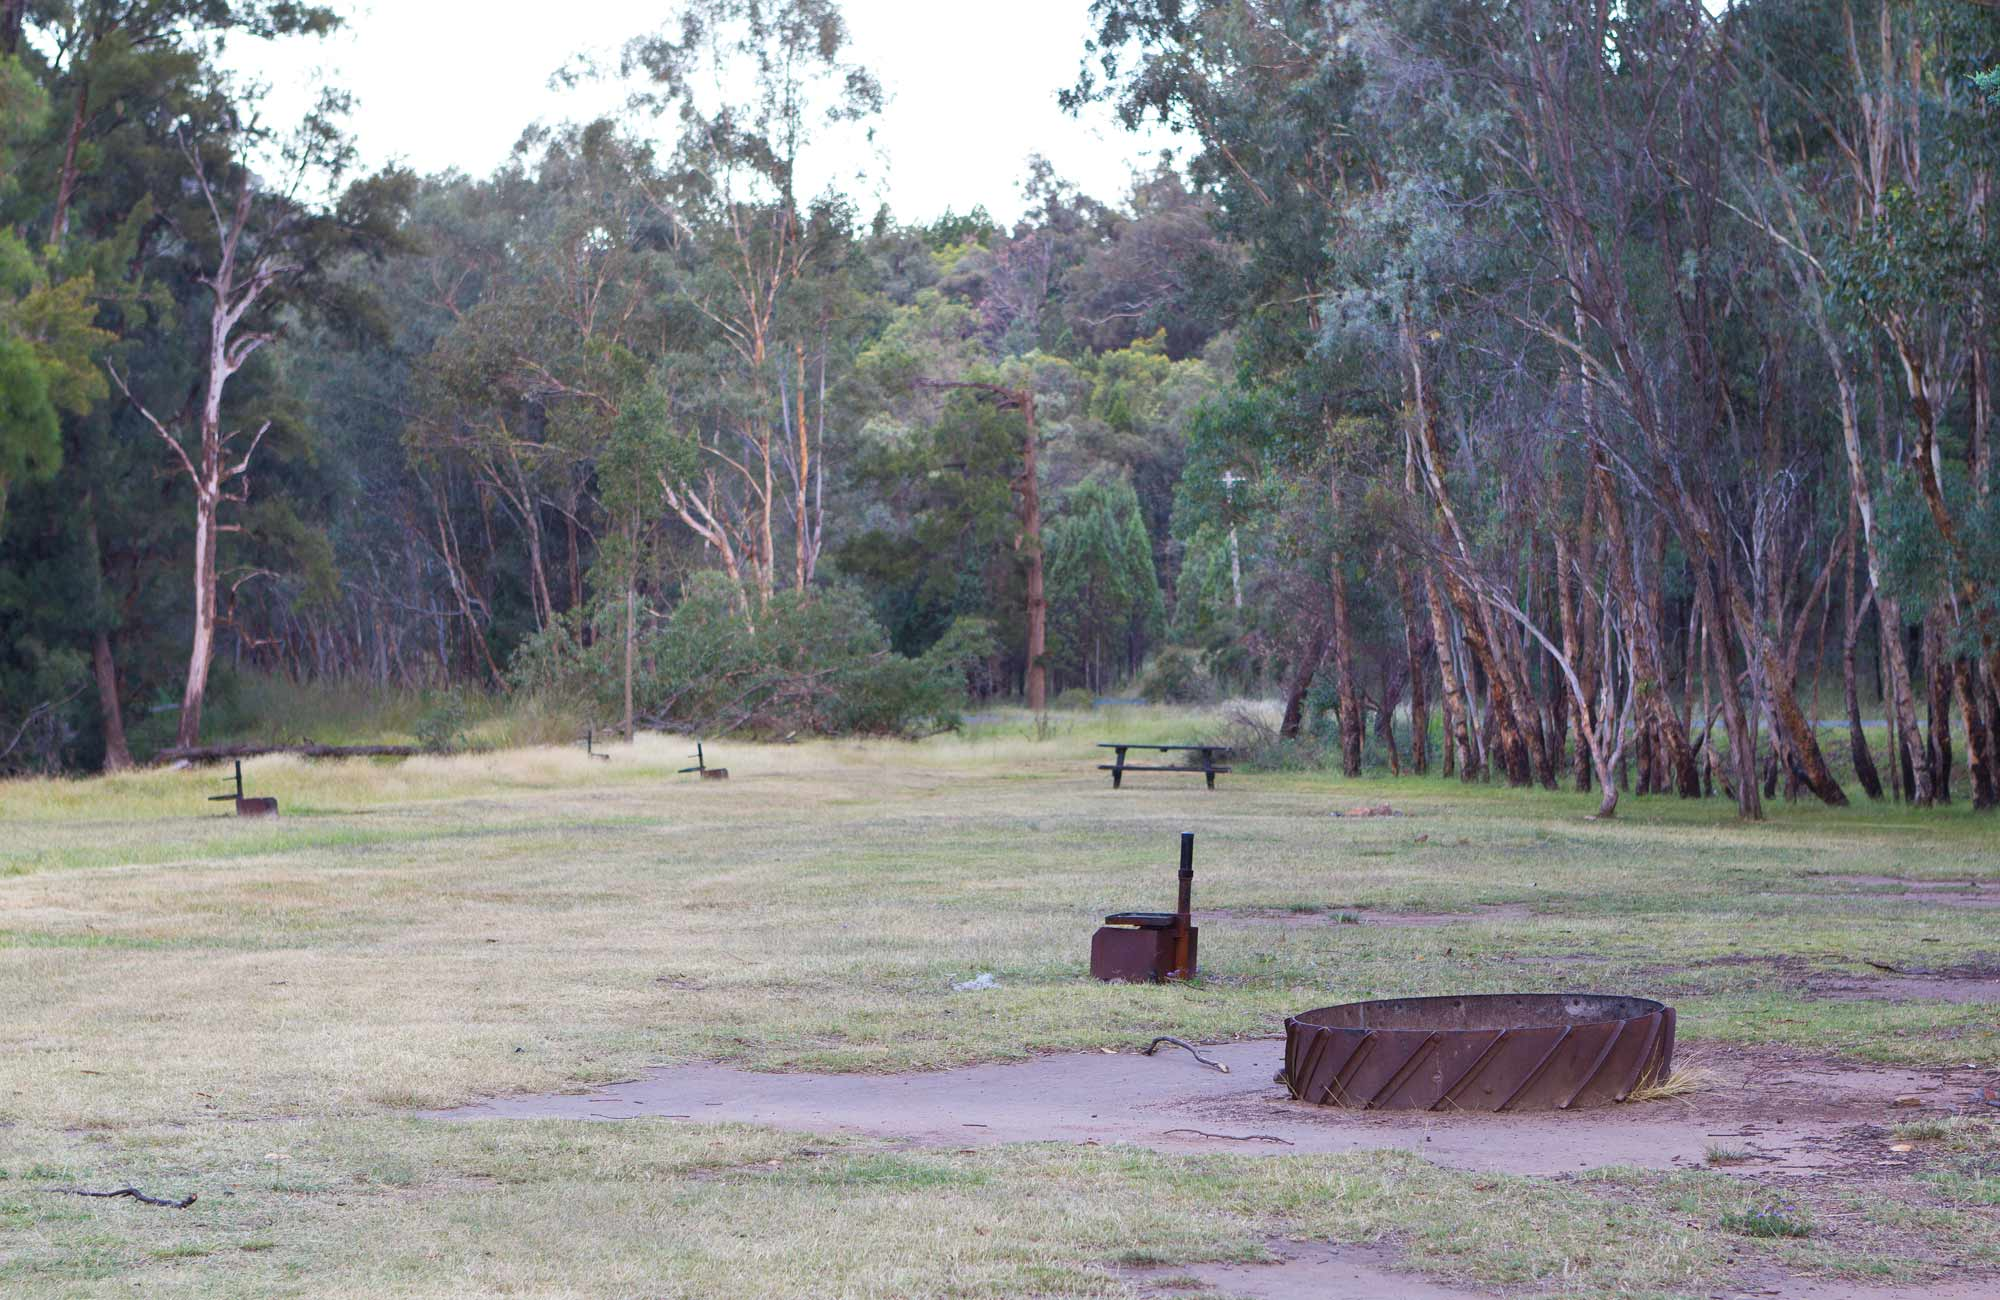 Camp Wambelong, Warrumbungle National Park. Photo: Rob Cleary